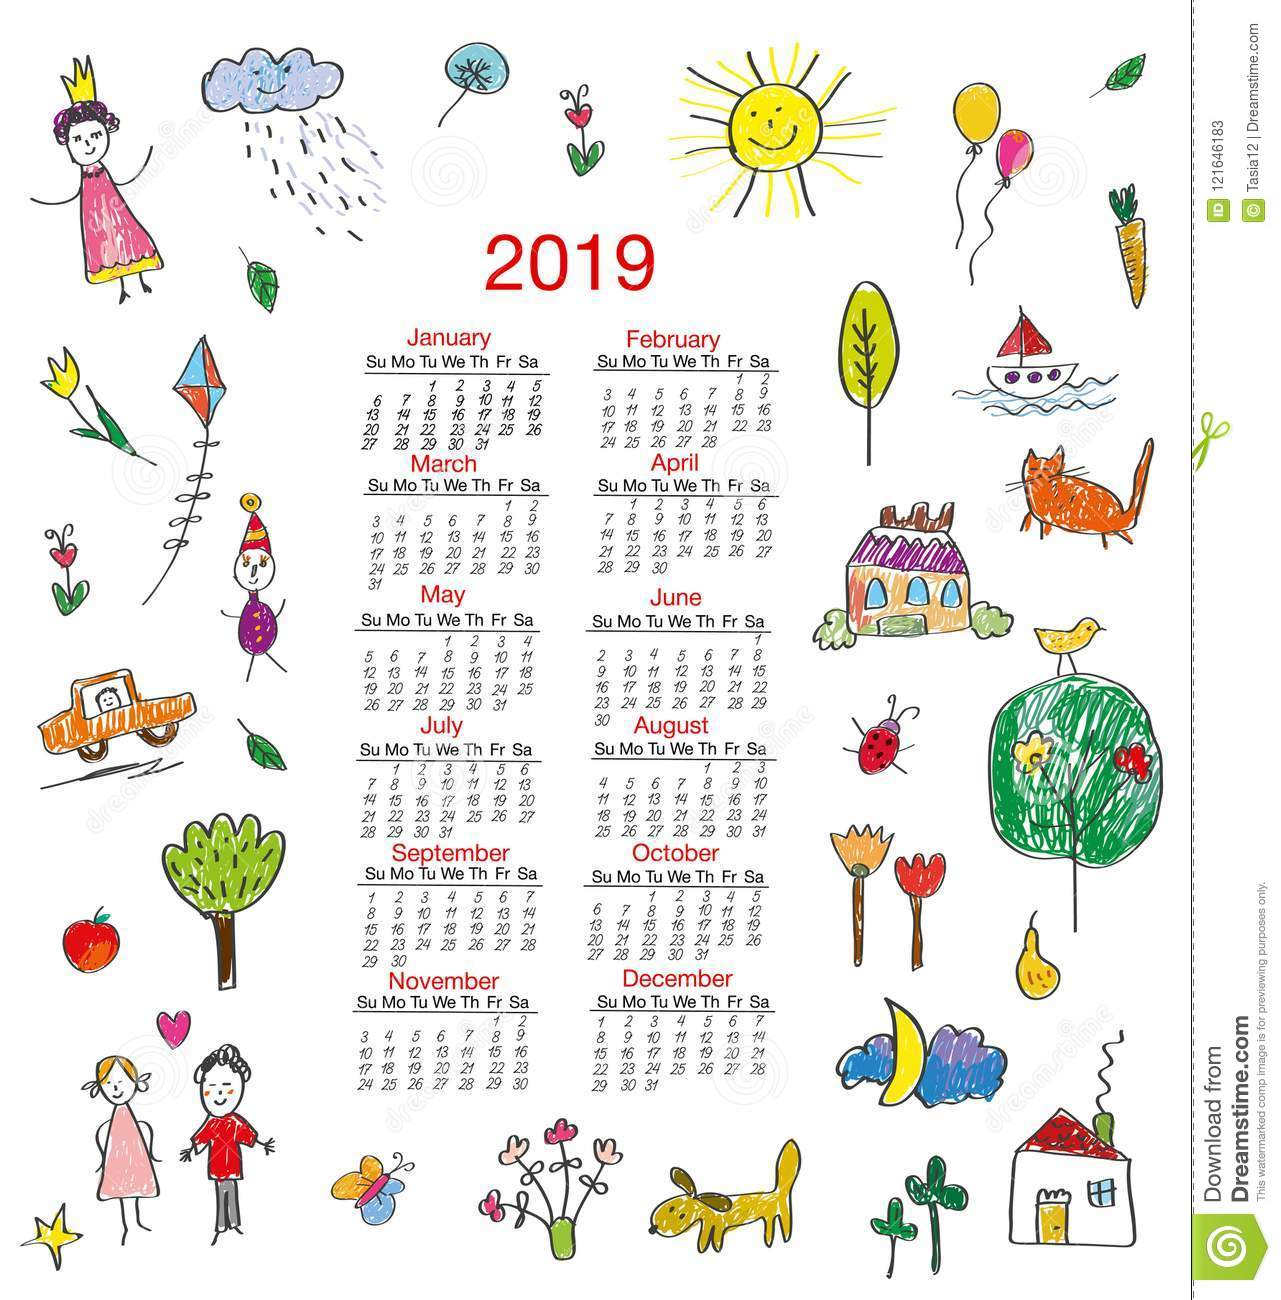 Funny calendar 2019 with kids drawings for children. Vector illustration